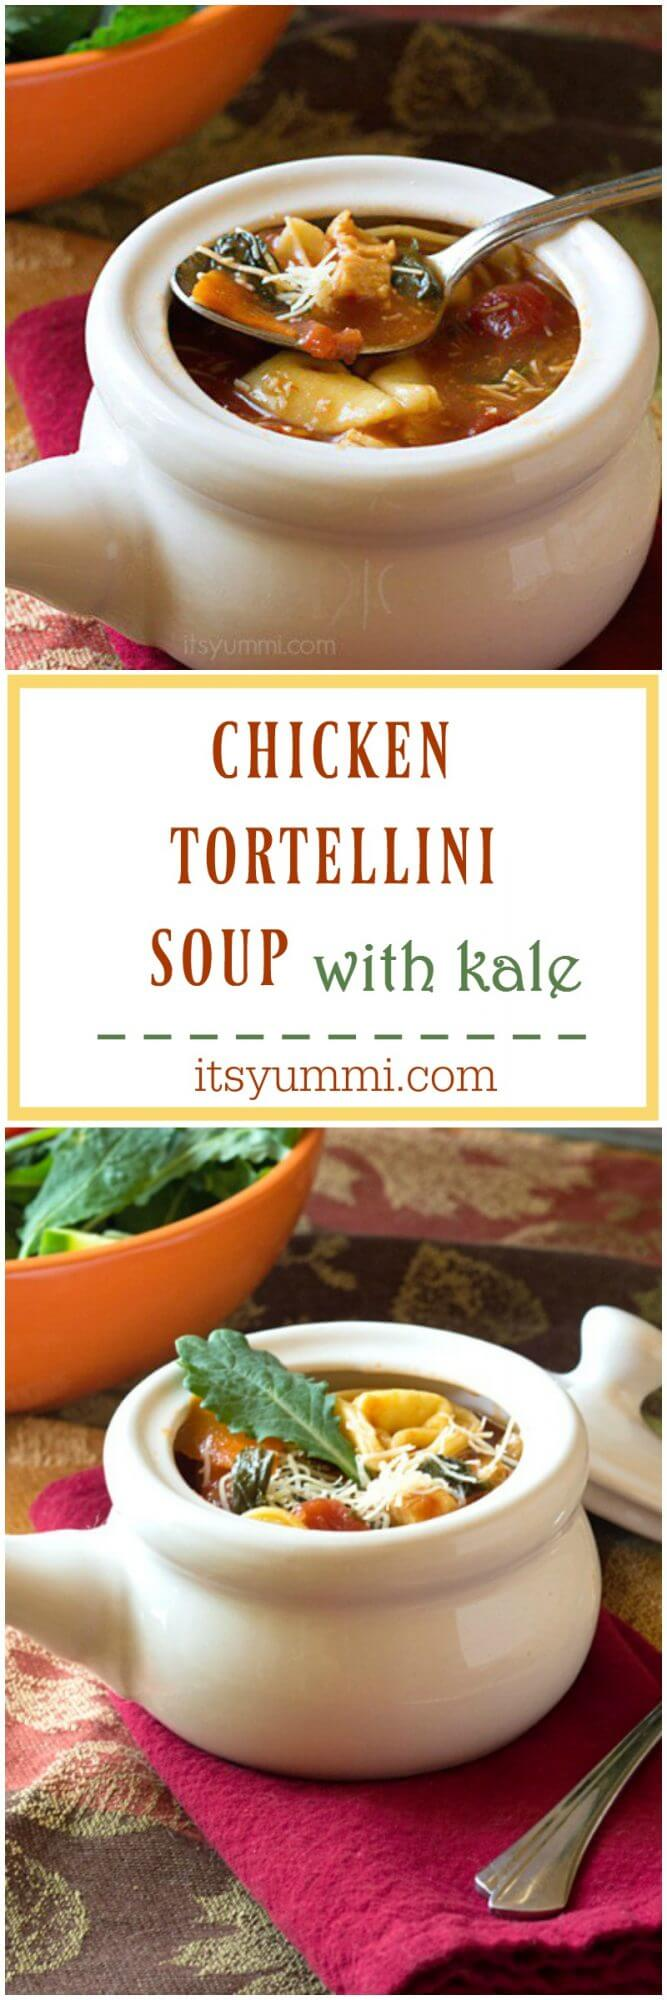 This hearty chicken tortellini soup recipe is a must make! With tender grilled chicken, cheese tortellini, crisp vegetables, and baby kale. Pure comfort food! Recipe on itsyummi.com